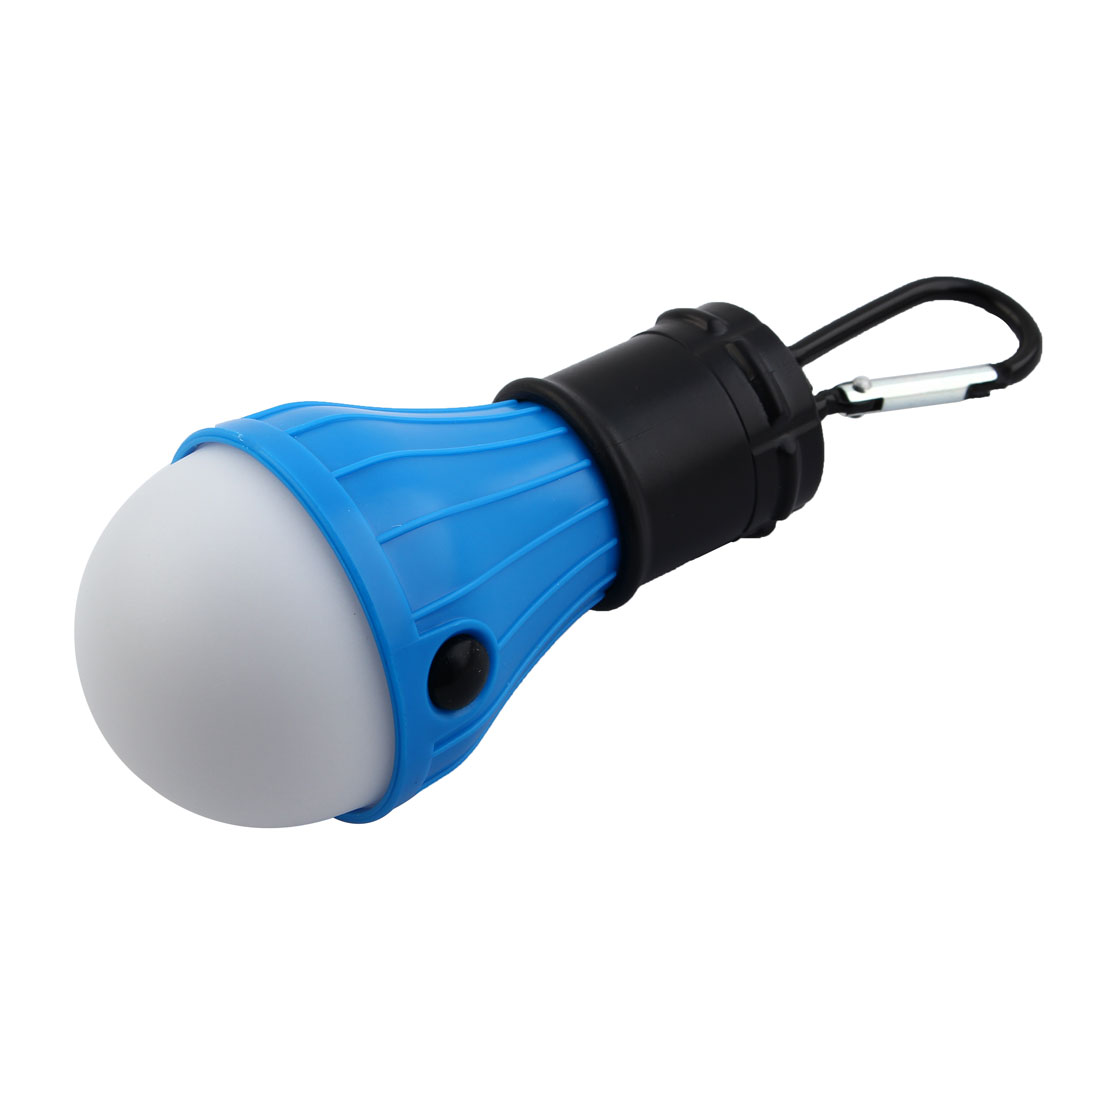 Outdoor Travel 3 Model Portable Tent Light Camping Hanging LED Lamp Blue